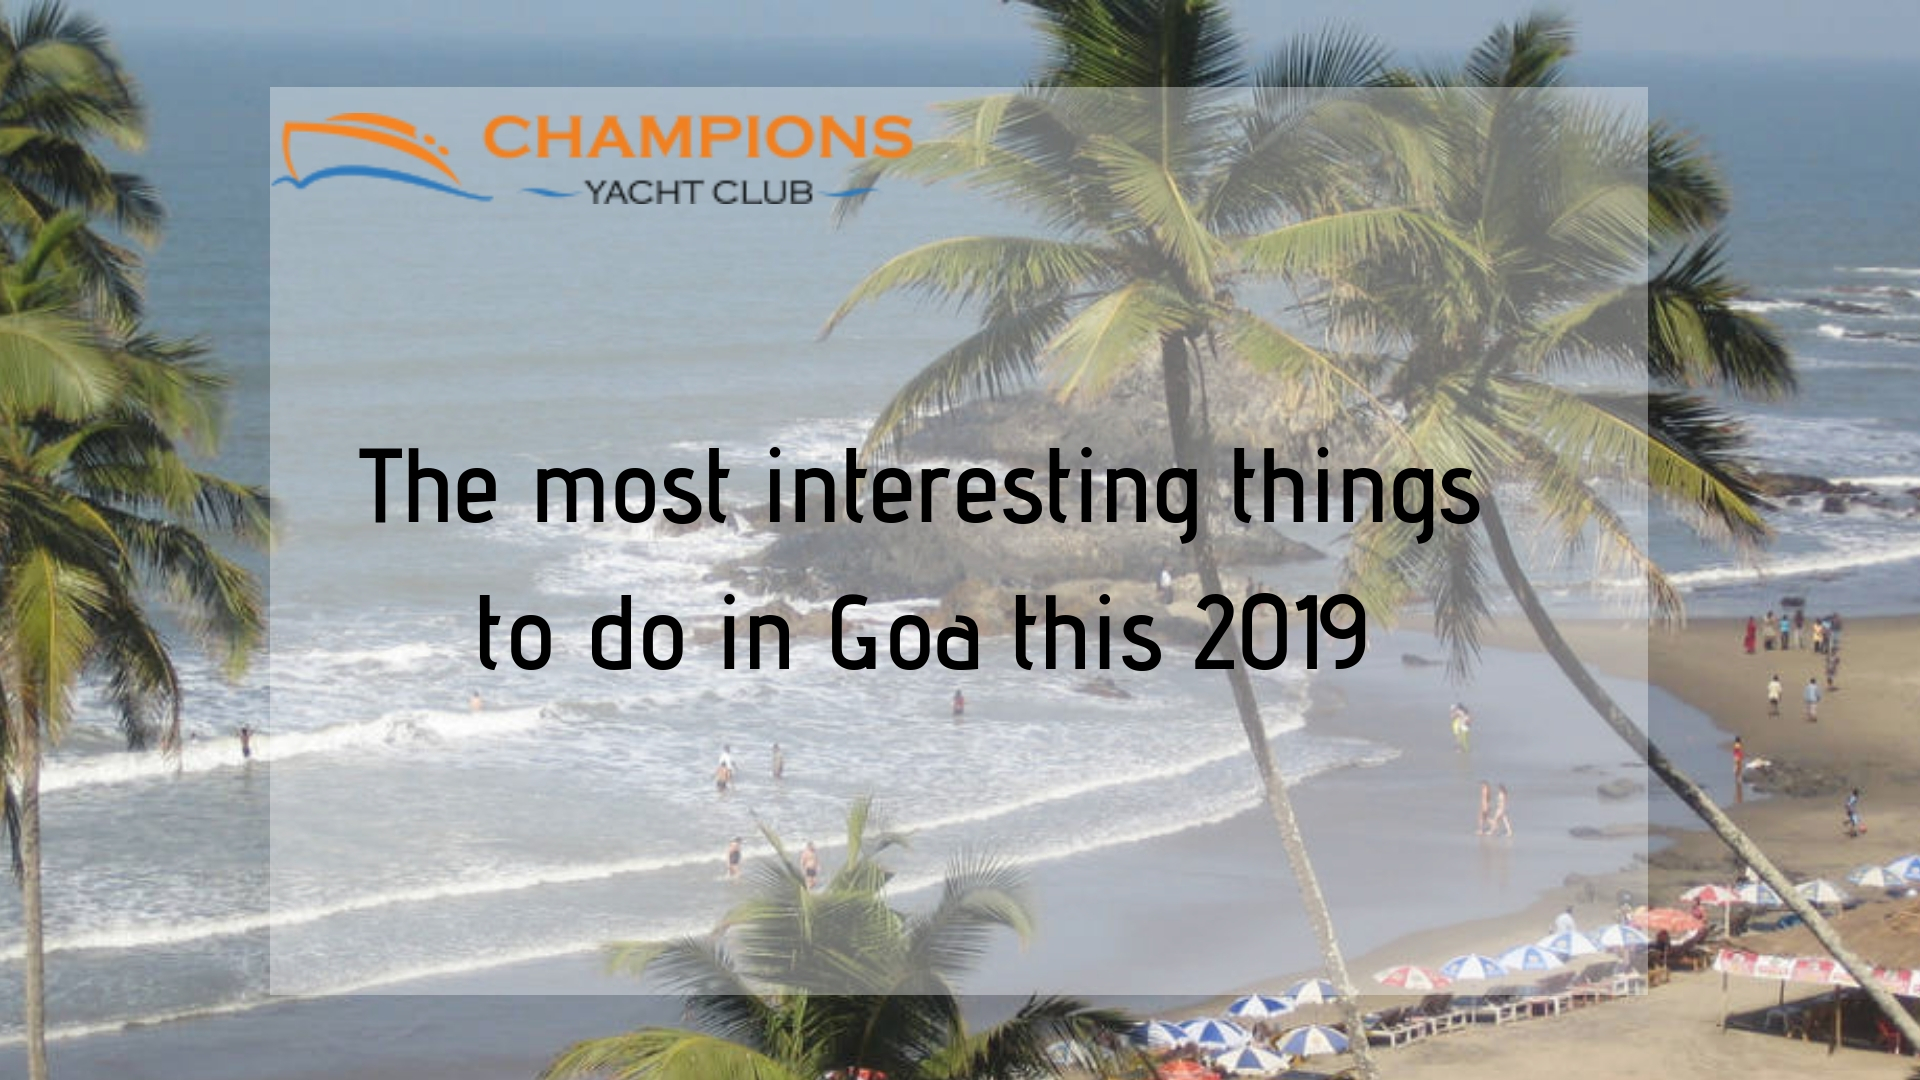 The most interesting things to do in Goa this 2019